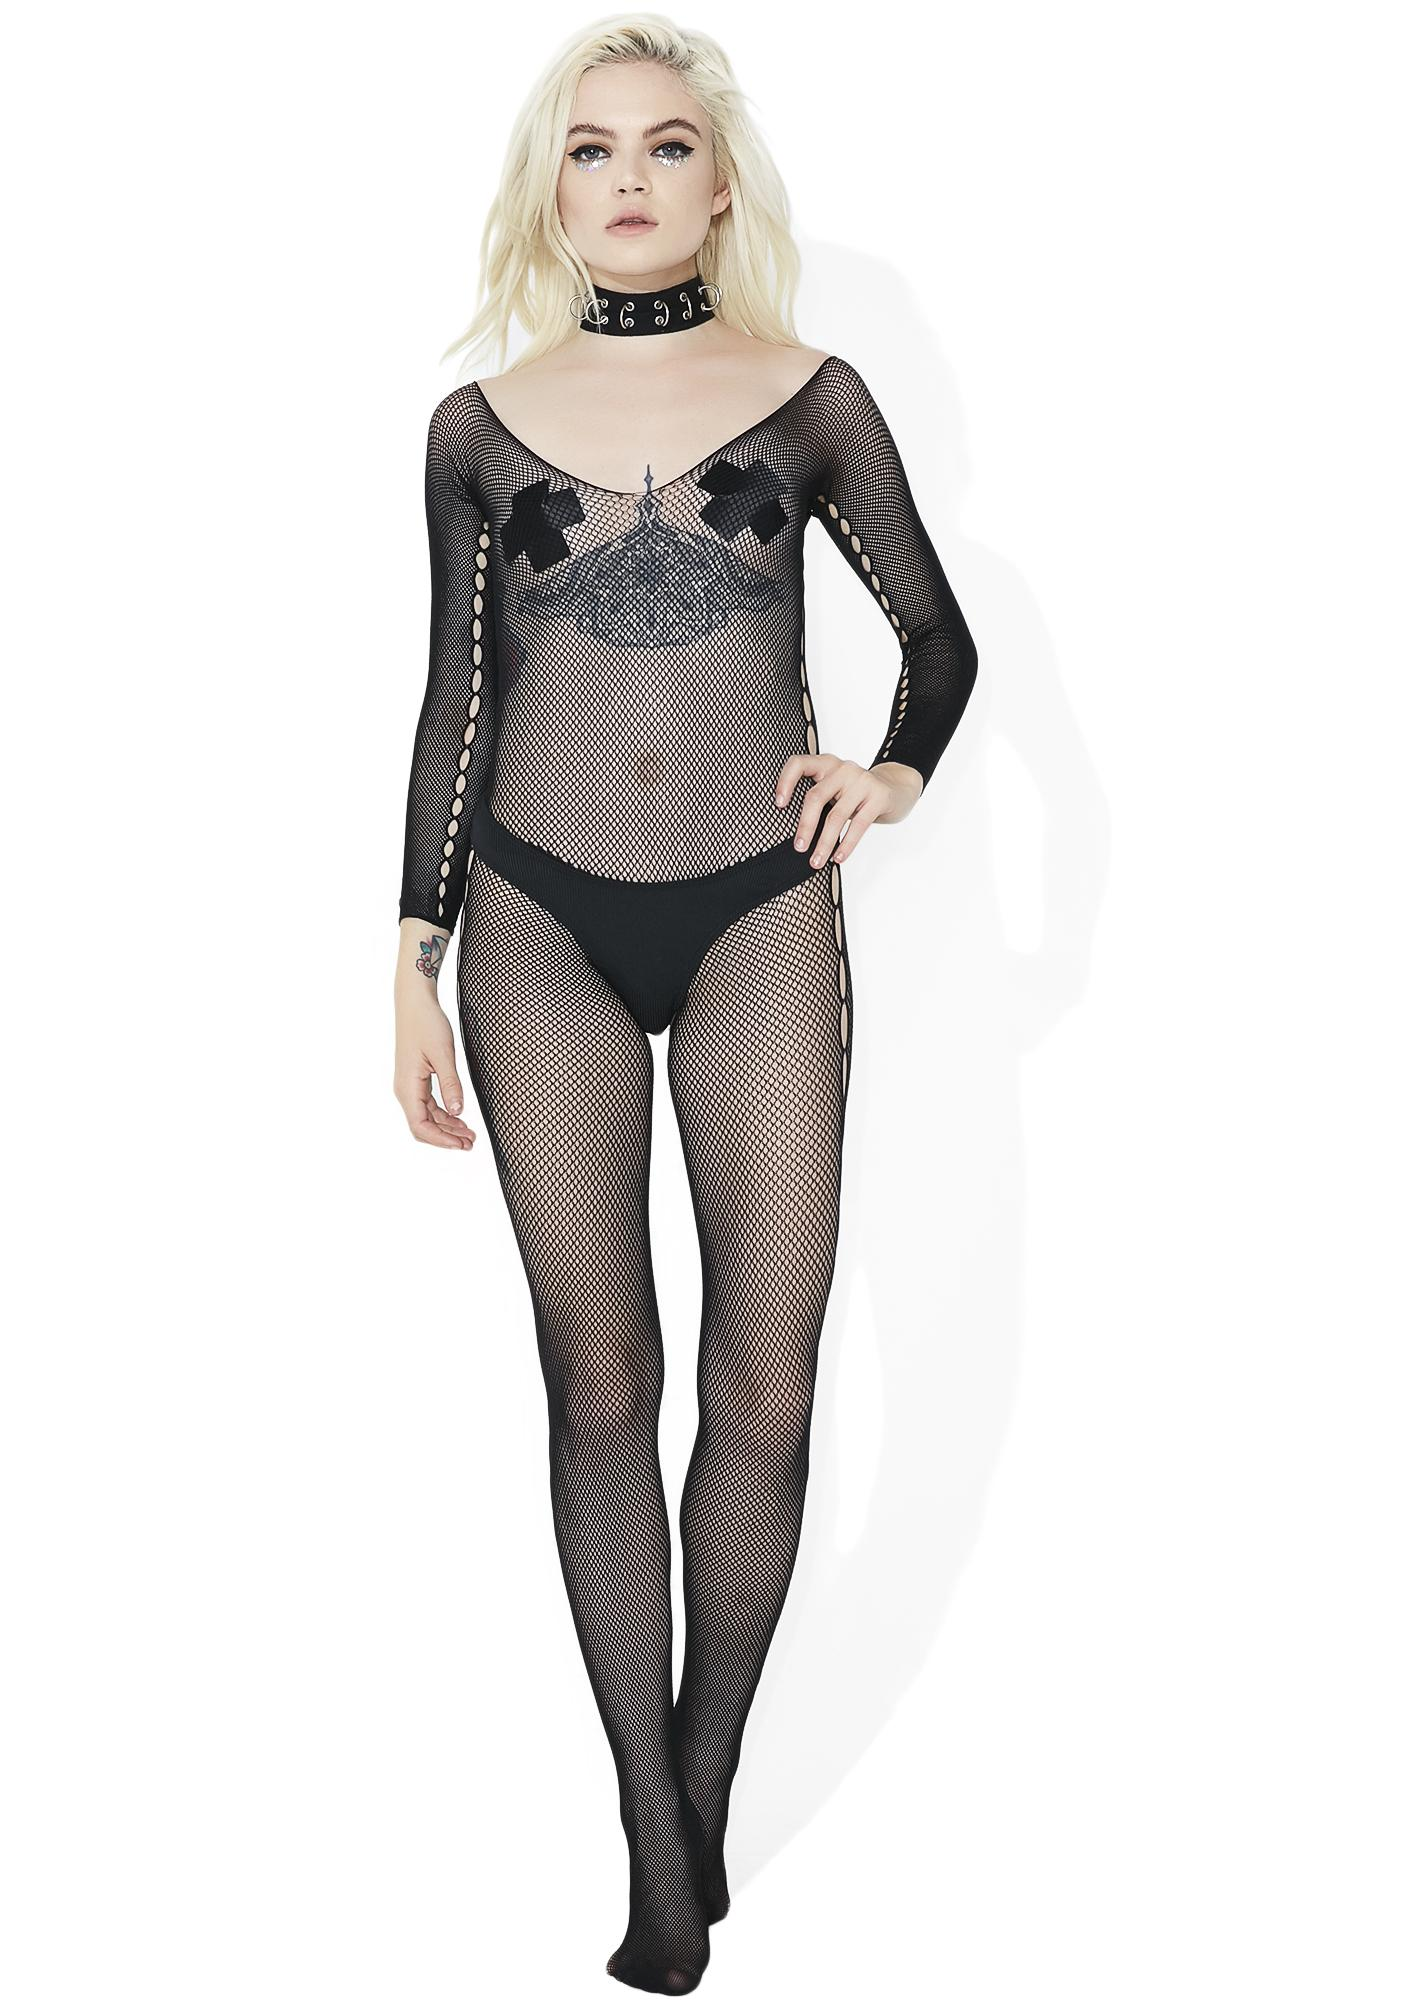 Hauty The Big O Fishnet Bodystocking